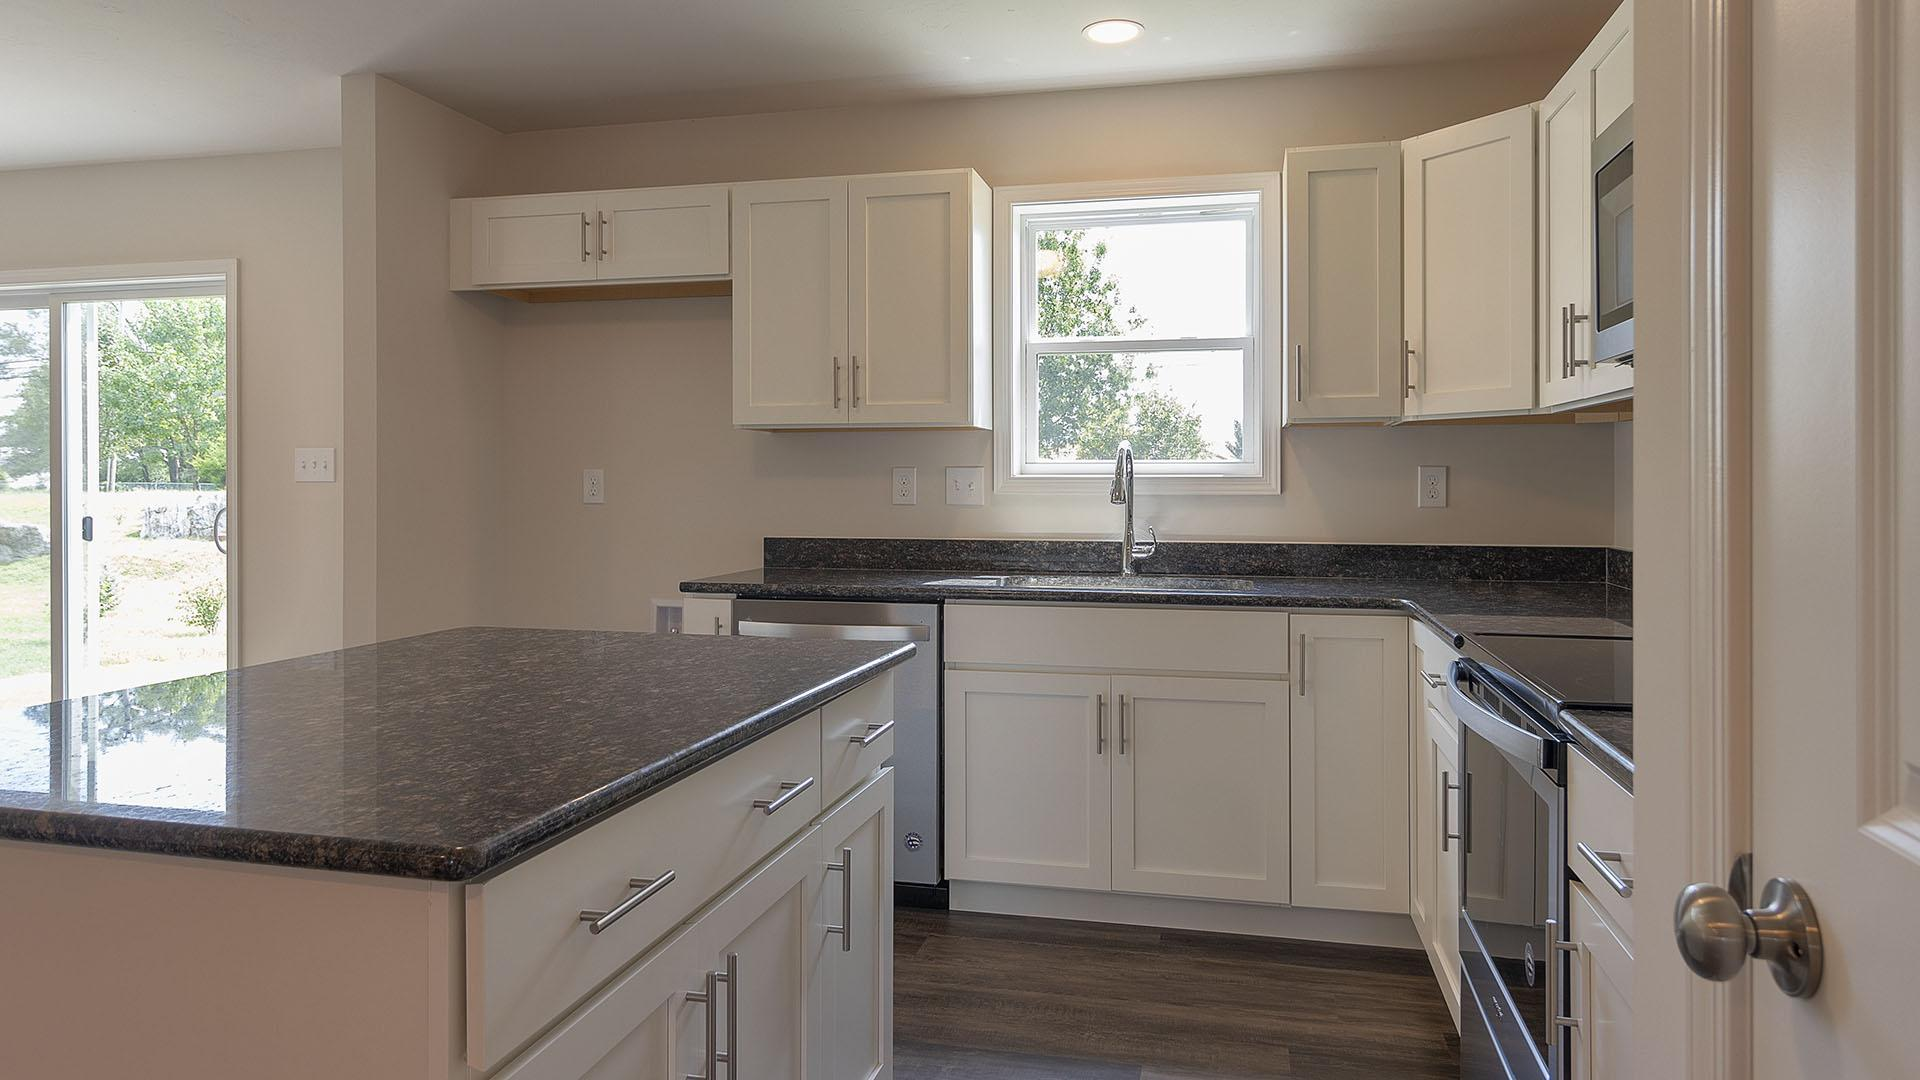 Kitchen featured in the Redwood By S & A Homes in Harrisburg, PA